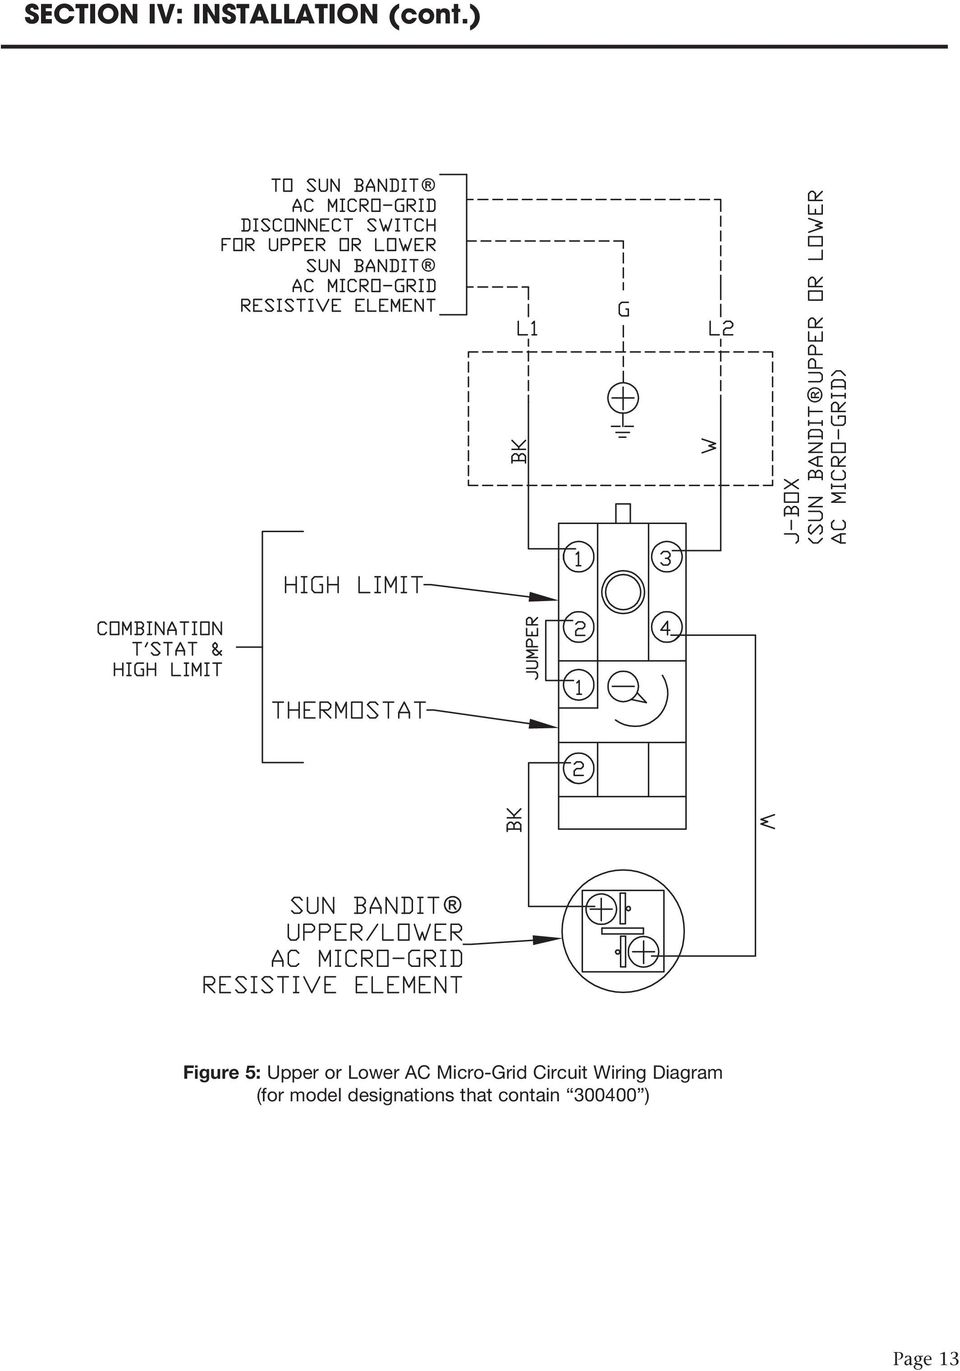 Micro-Grid Circuit Wiring Diagram